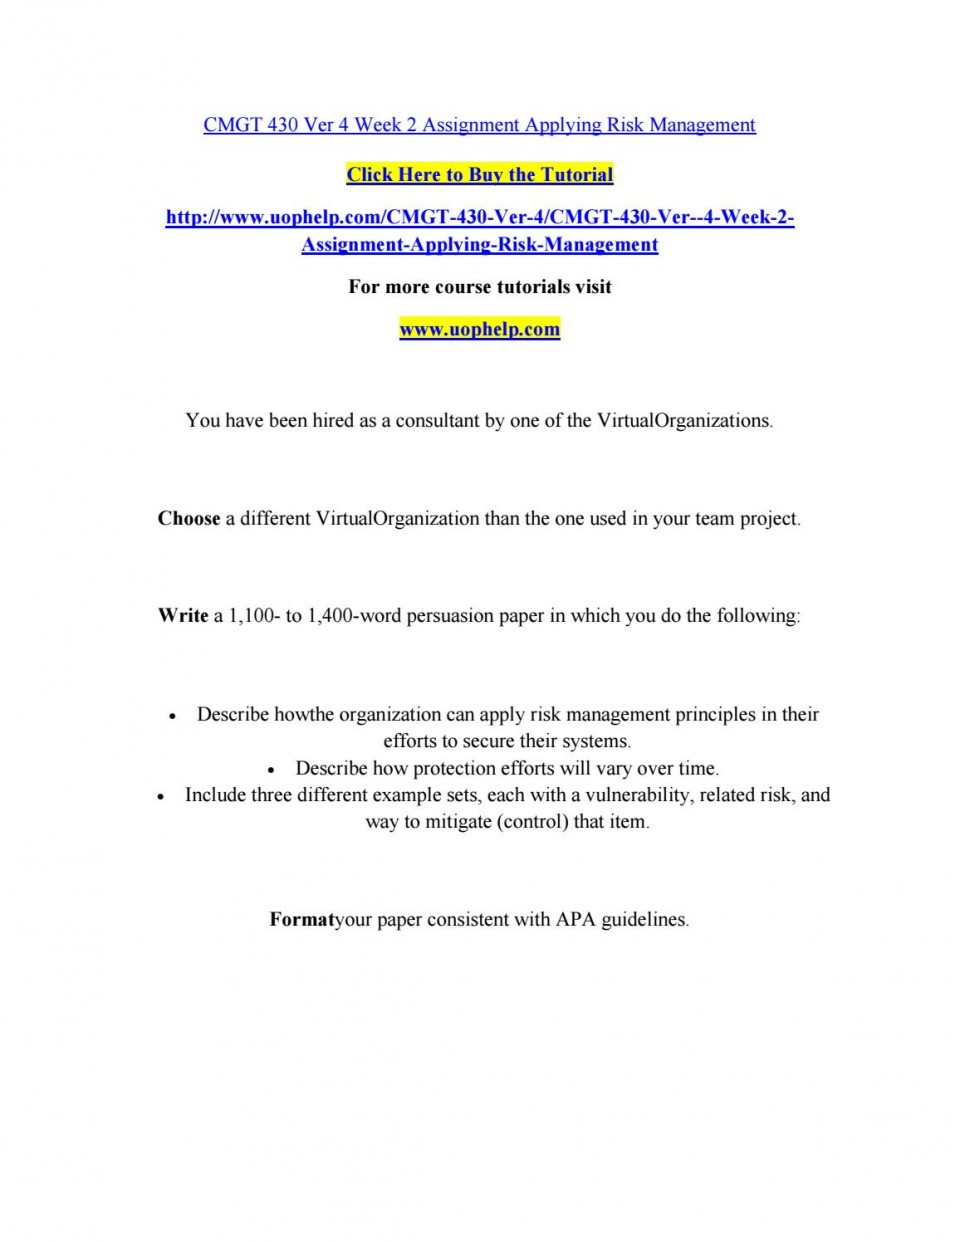 005 Parts Of Research Paper Pdf Page 1 Staggering And Its Definition Quantitative 960